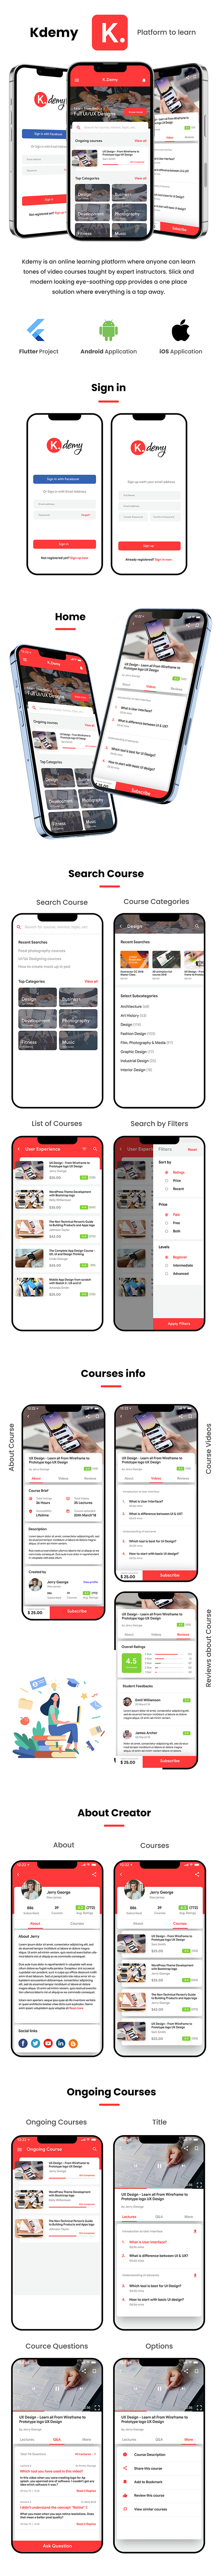 Online Learning App Template | Online exam app | Online class App| Android + iOS | FLUTTER | Kdemy - 1